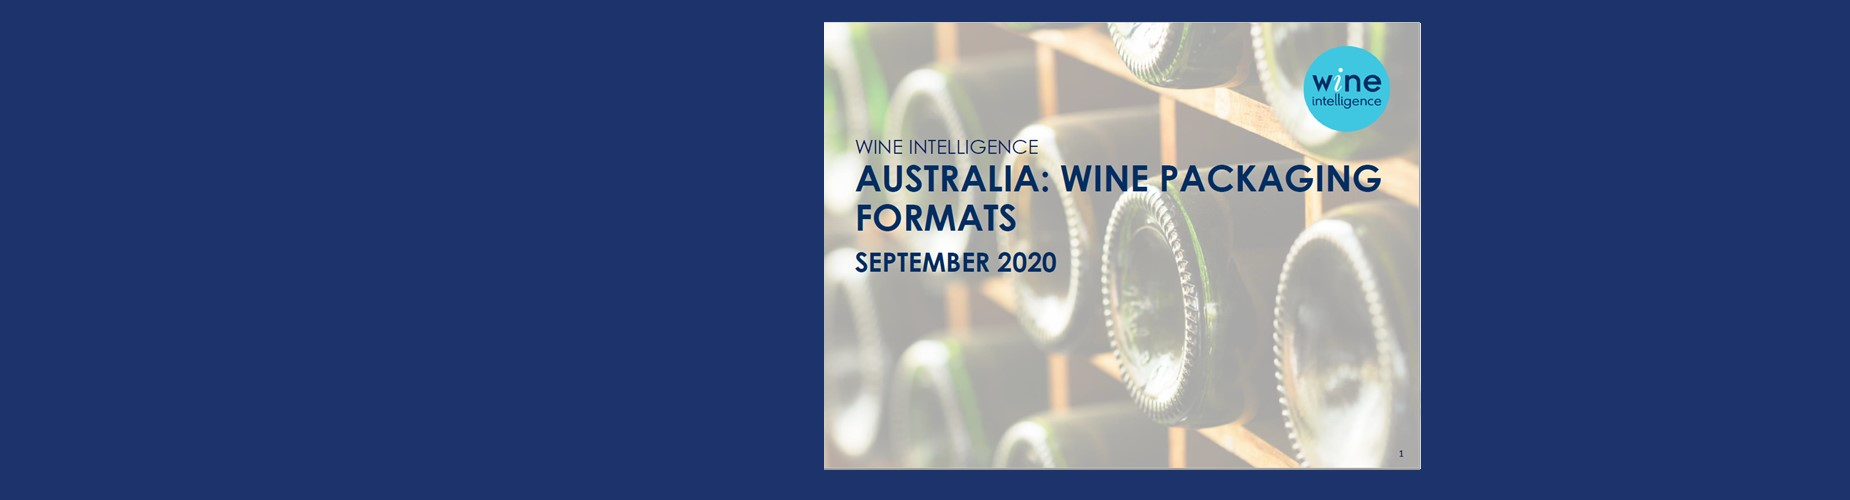 australia packaging 2020 - About reports shop